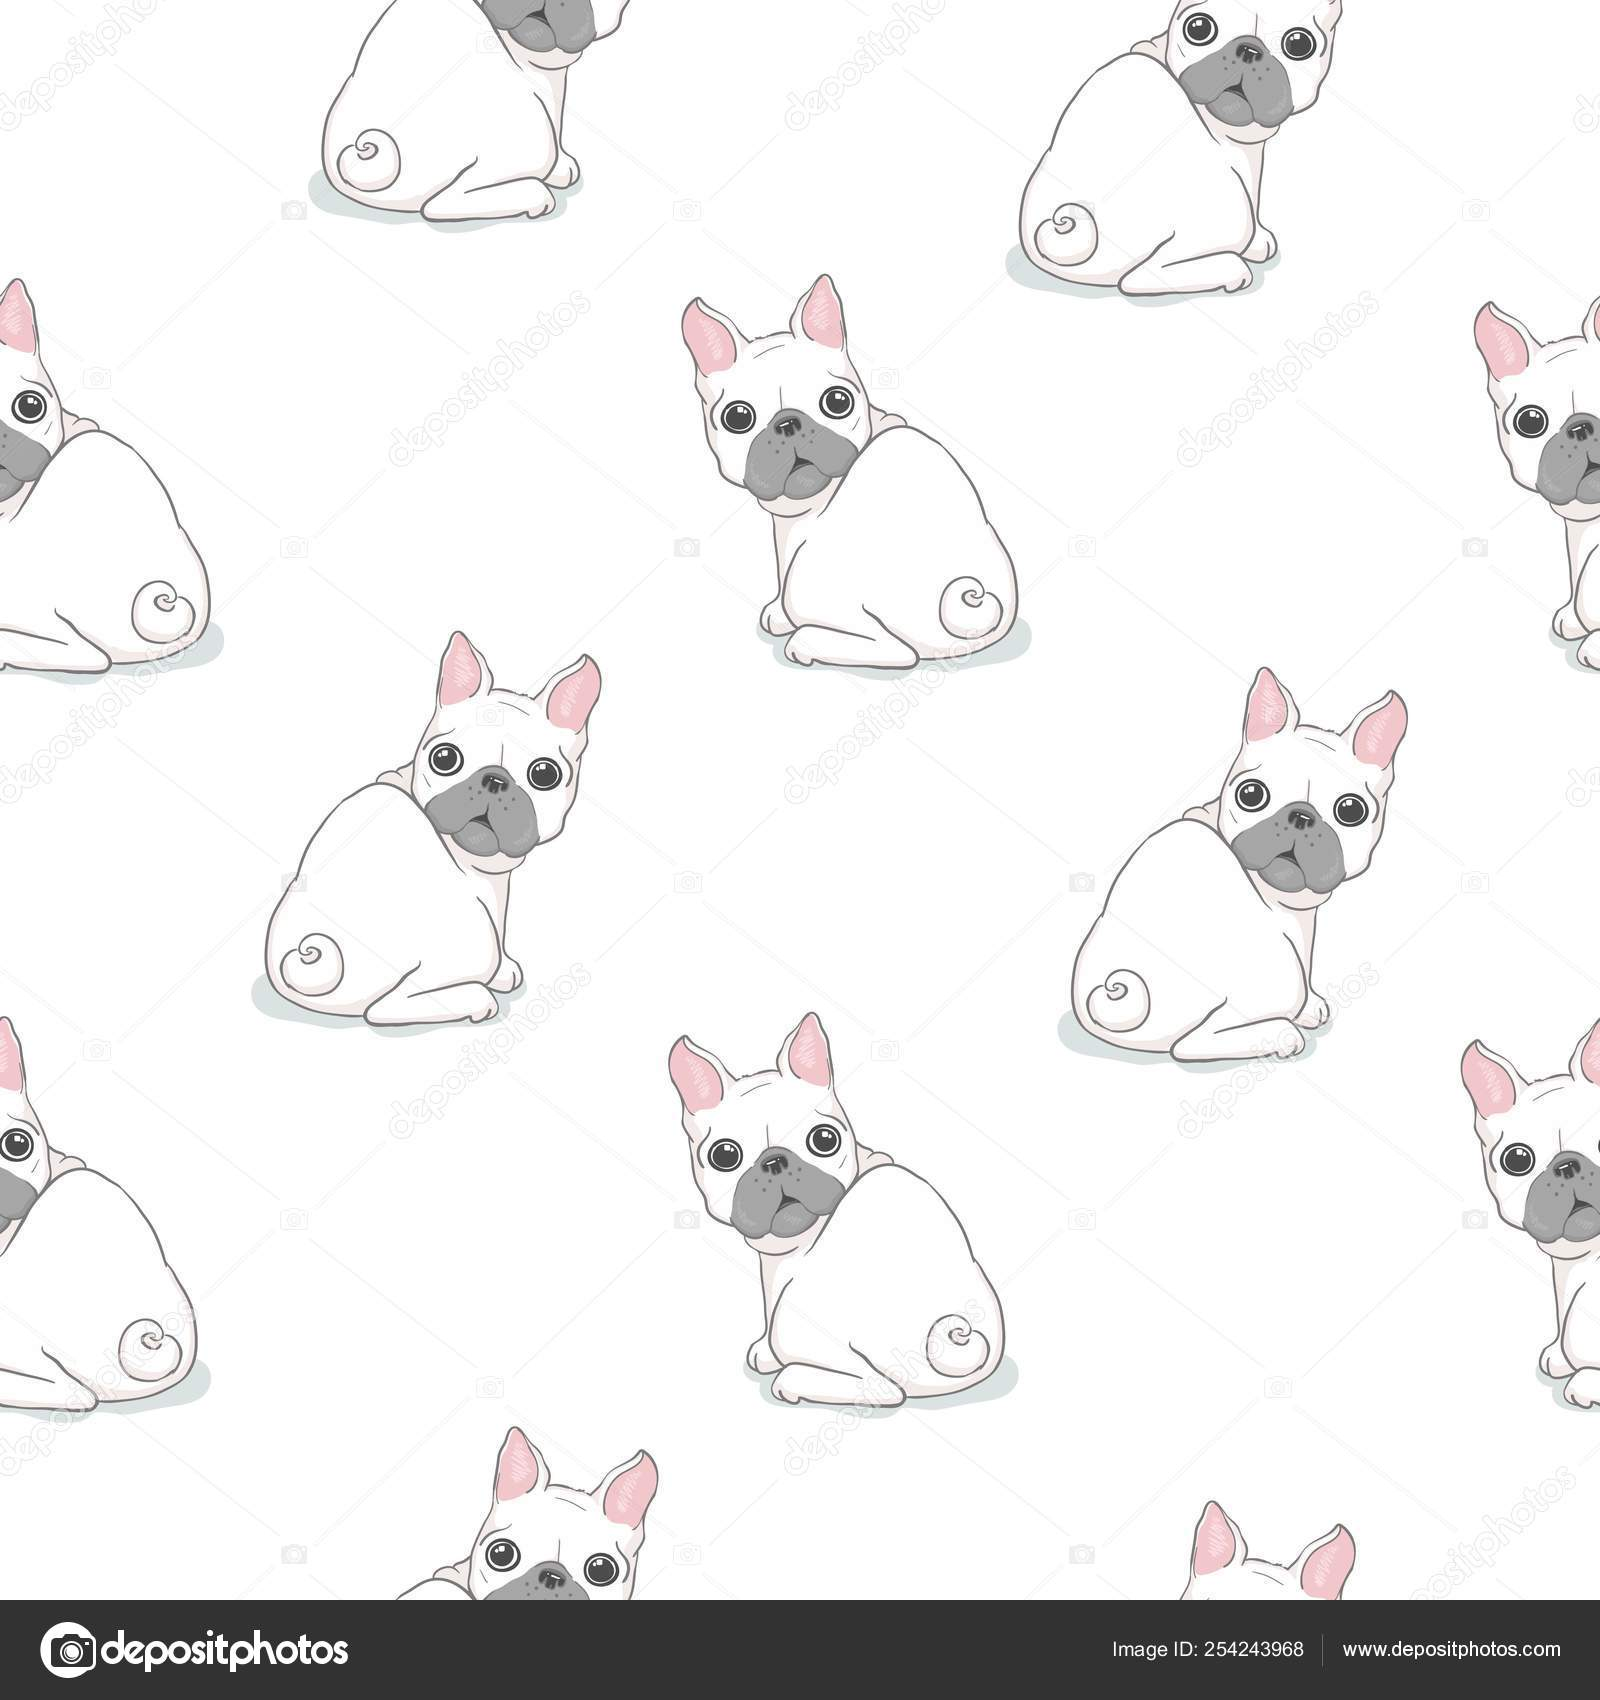 Dog Seamless Pattern French Bulldog Paw Vector Repeat Background Tile Cartoon Wallpaper Isolated Black Stock Vector C 89534886399 Mail Ru 254243968